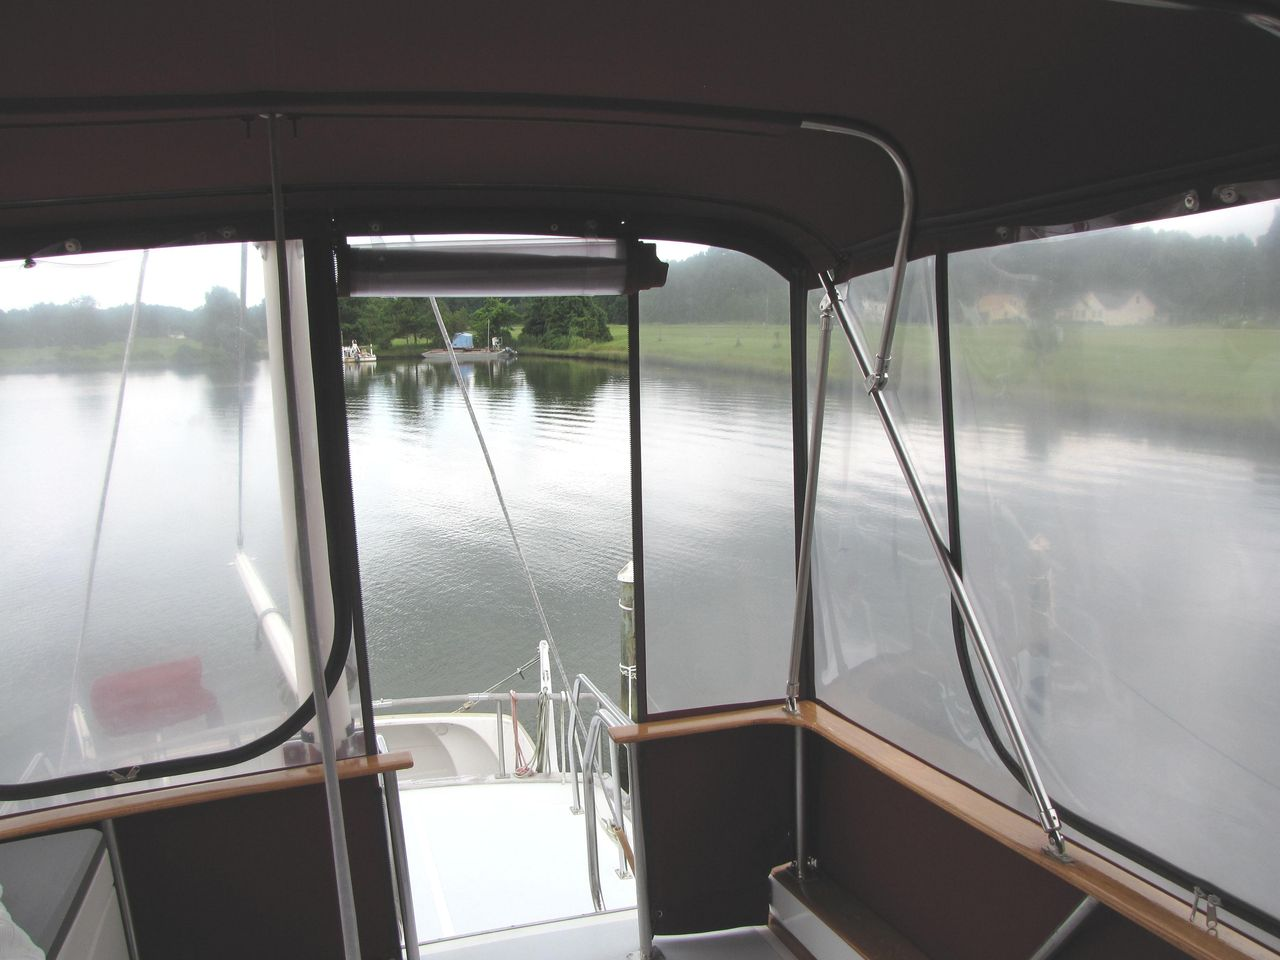 1984 Used Monk Trawler Boat For Sale - $94,900 - Beaufort